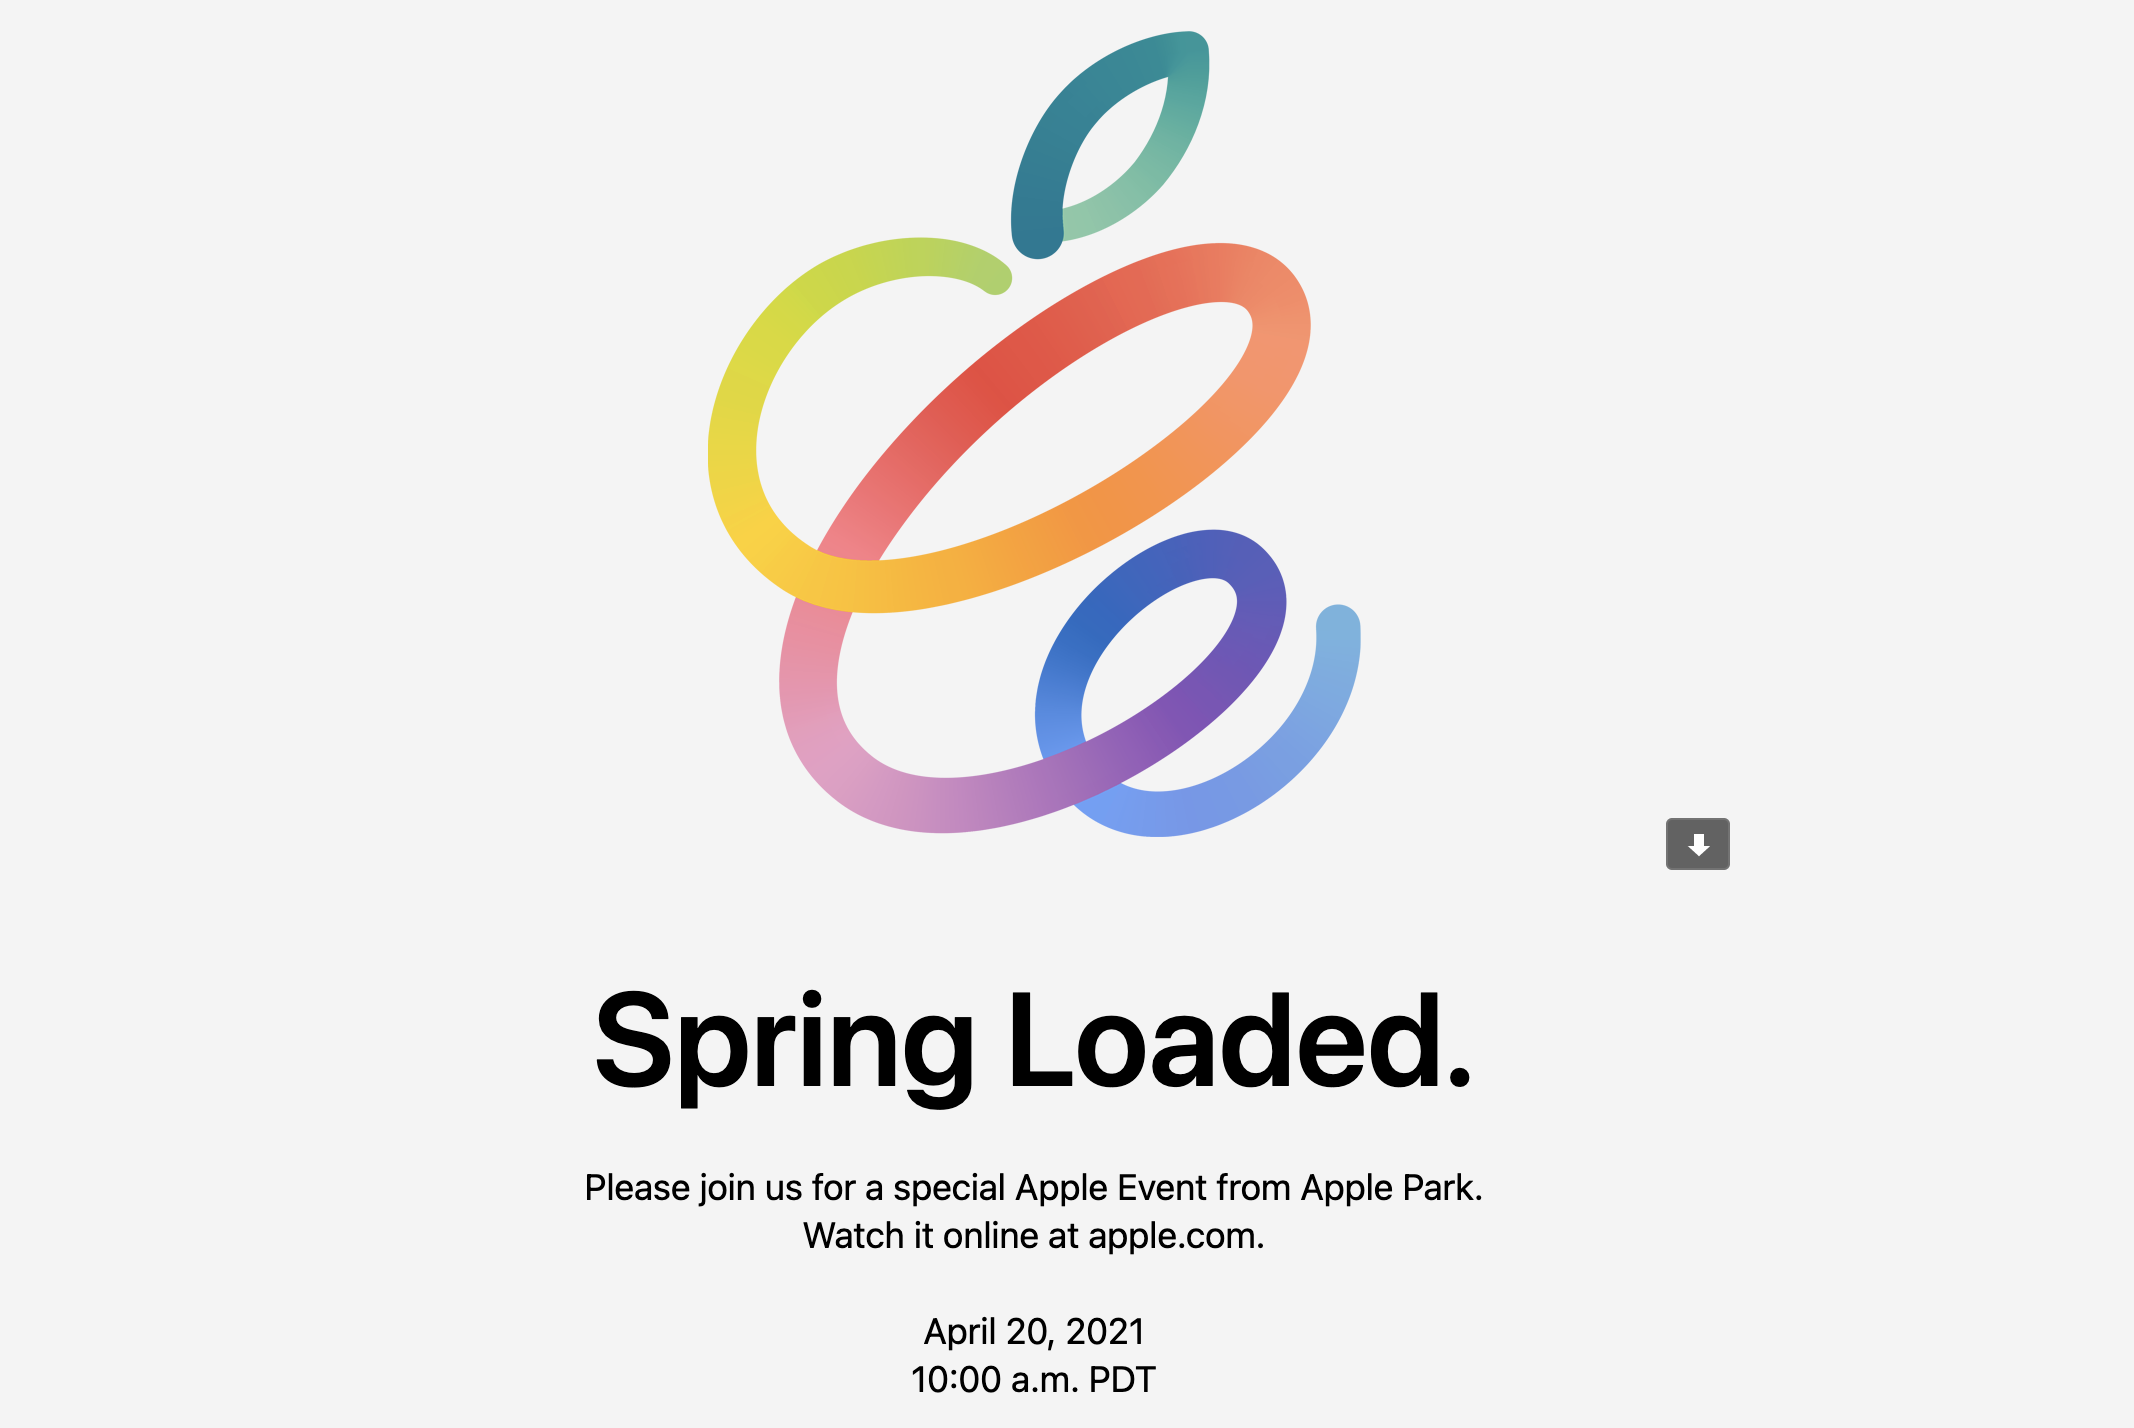 Apple confirms April 20th launch event, new iPads and Macs ...